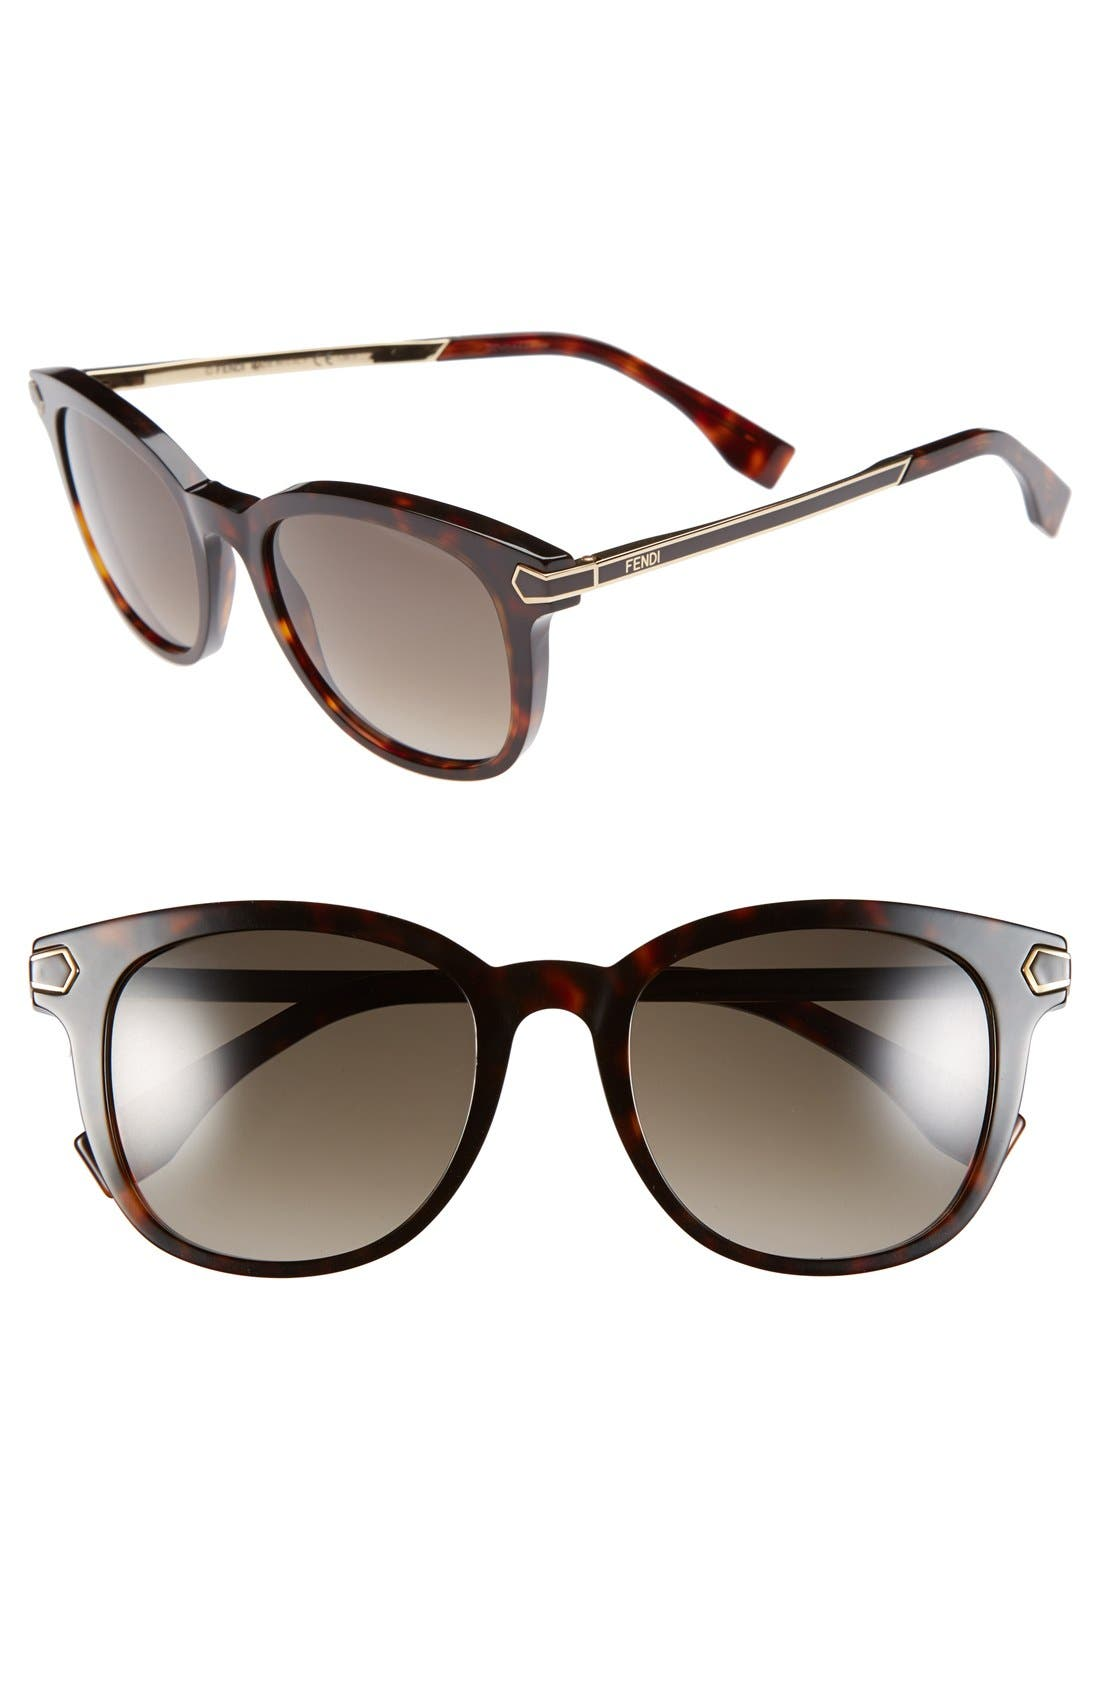 Alternate Image 1 Selected - Fendi 51mm Retro Sunglasses